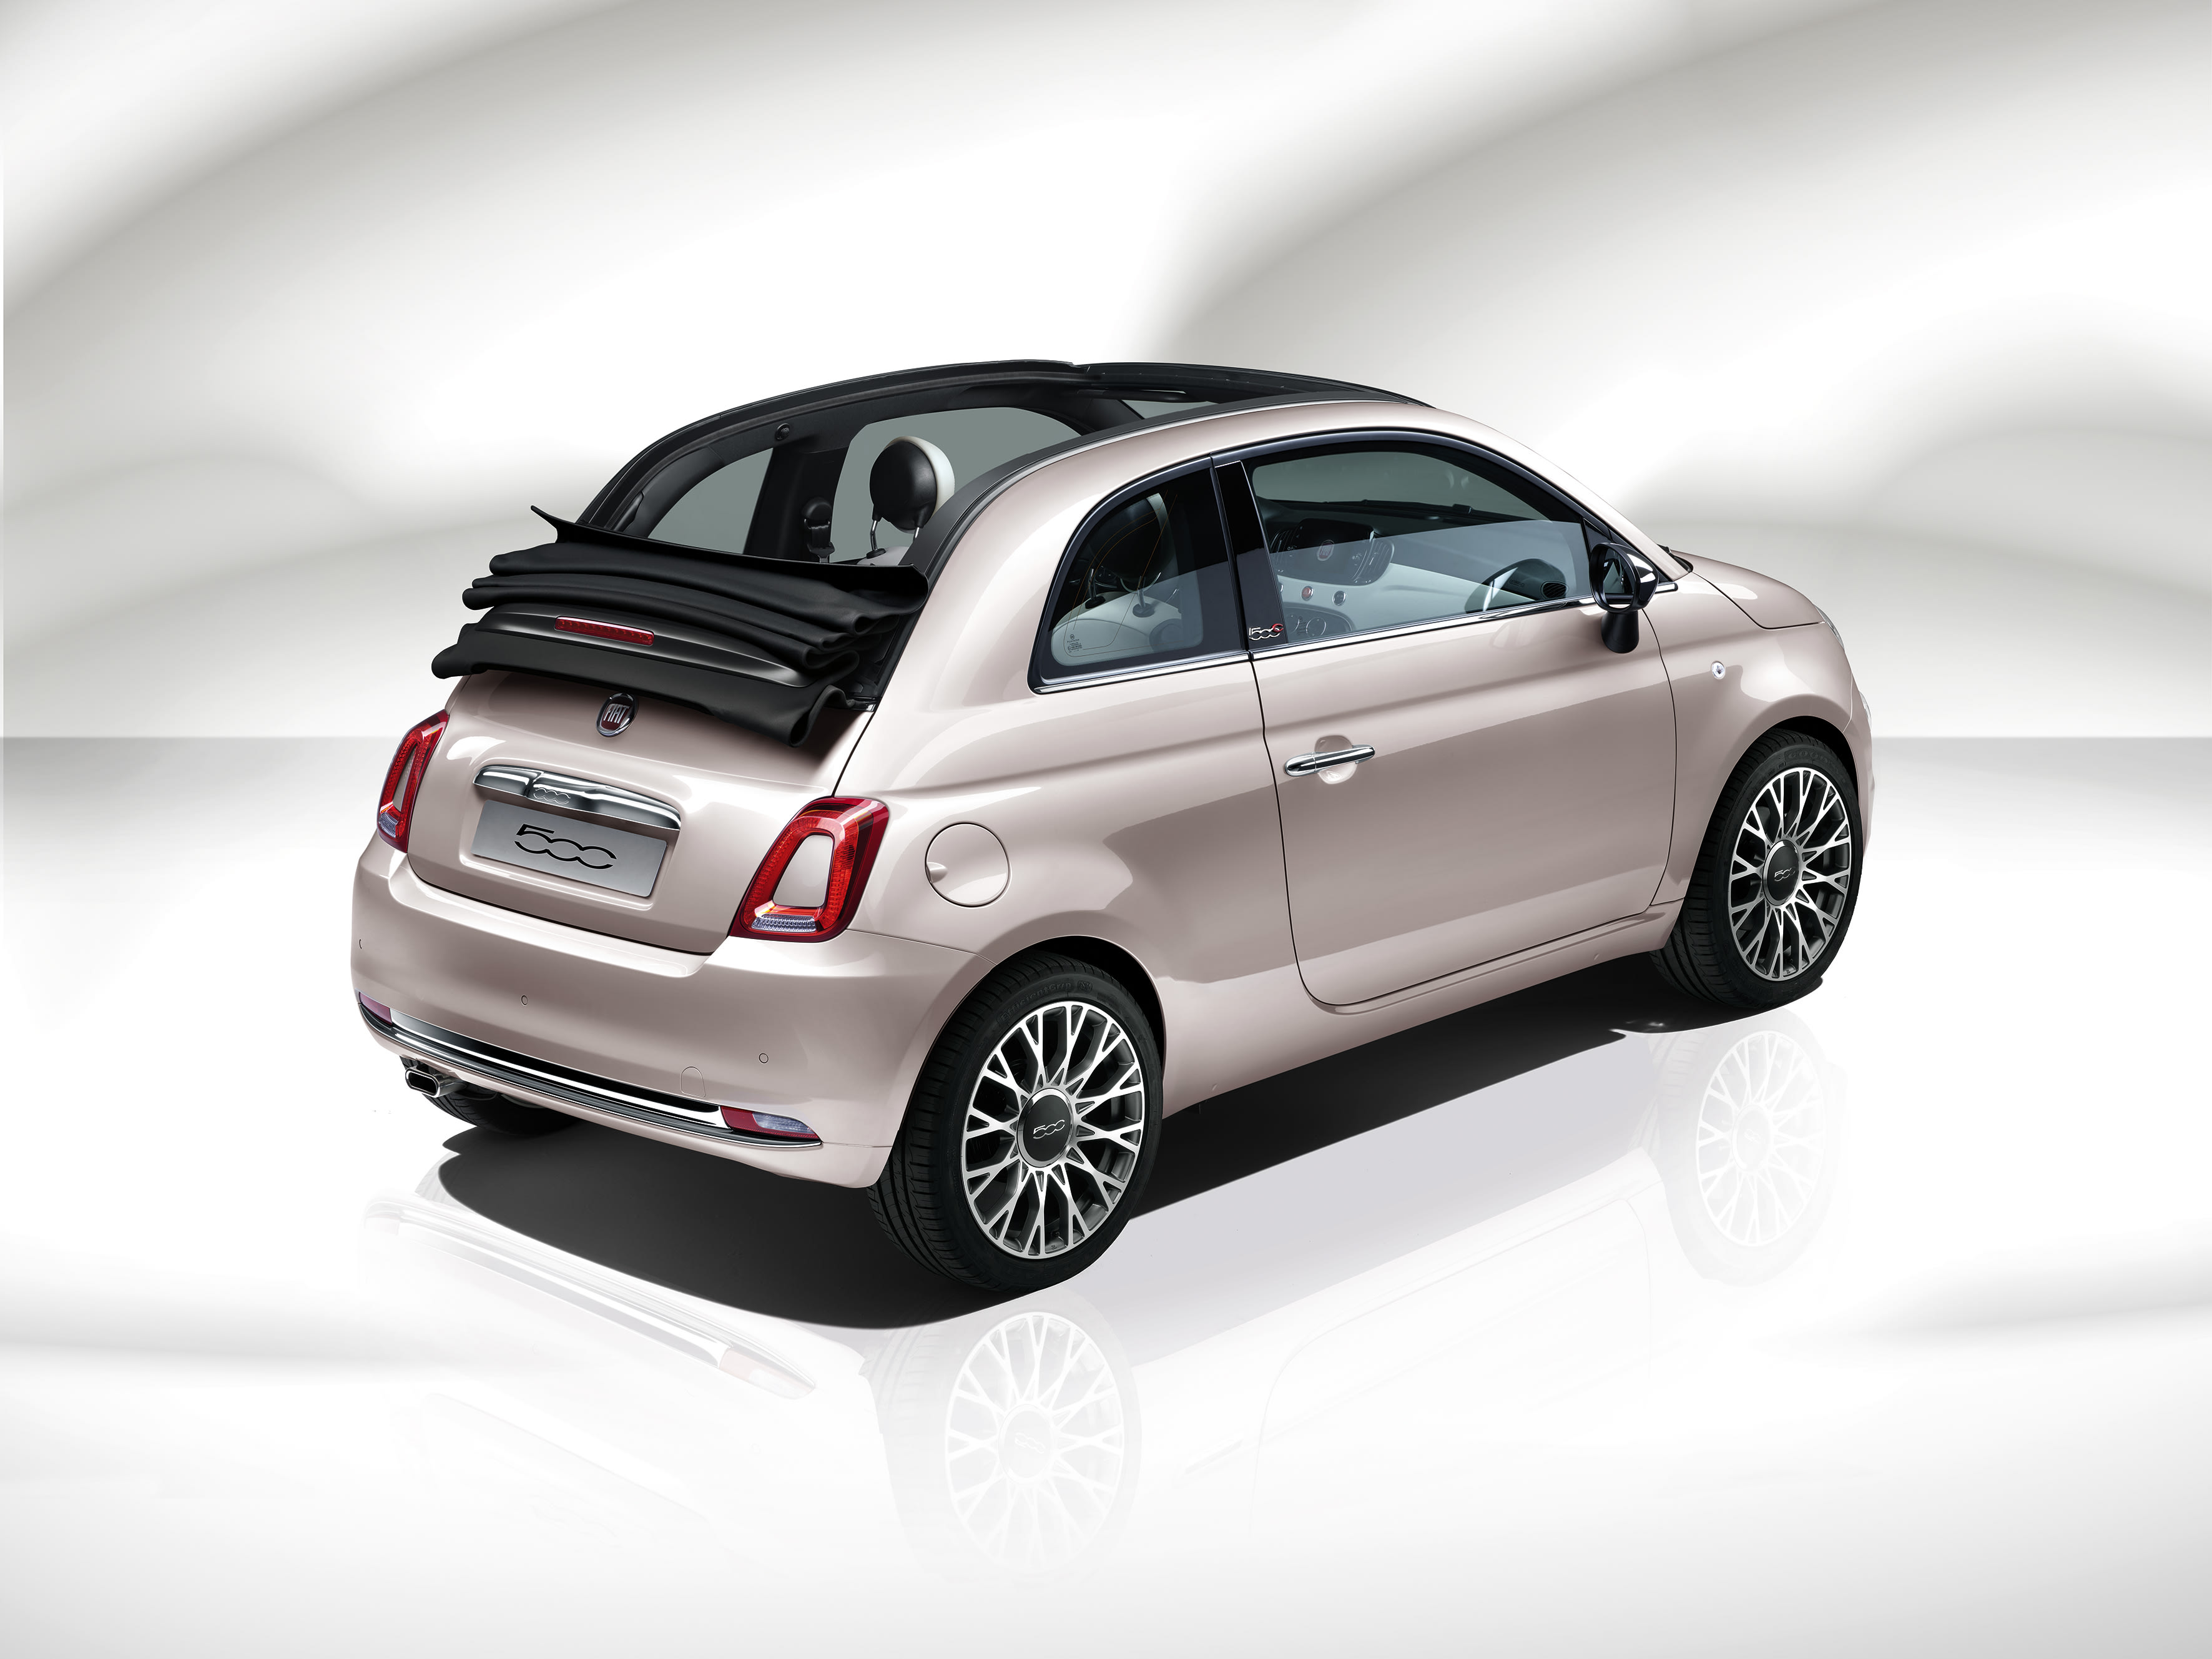 2020 Fiat 500 Pricing And Specs New Club Variant Enters Caradvice